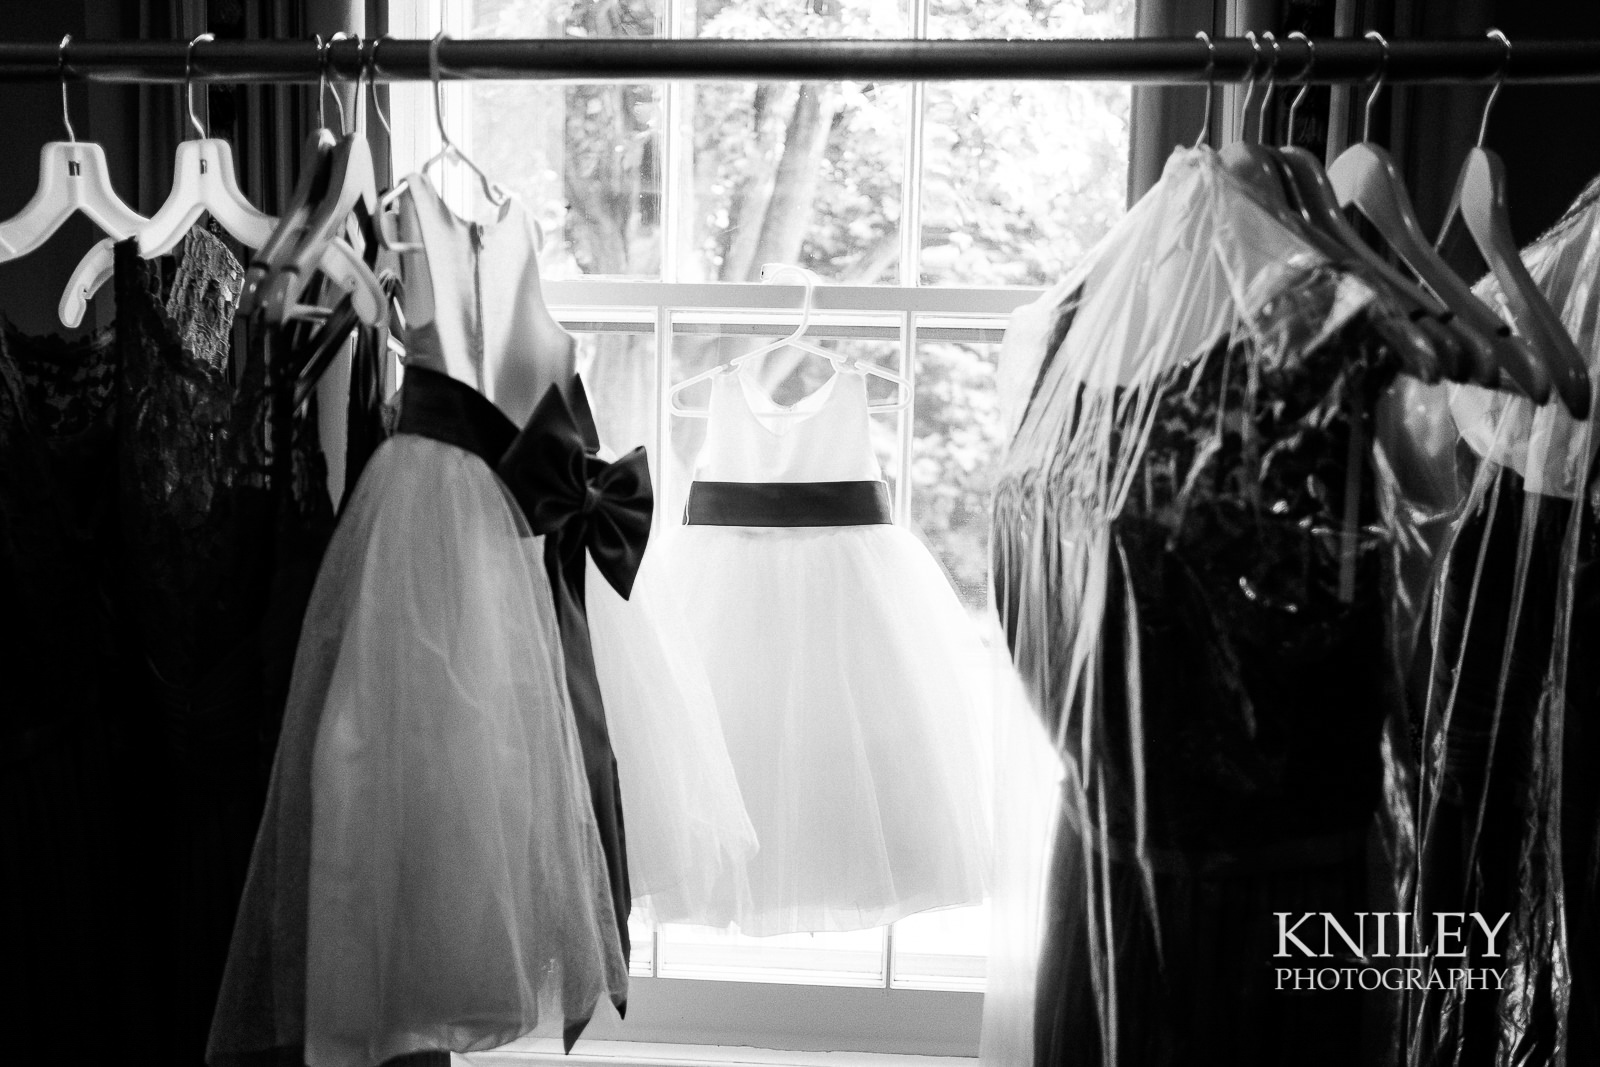 022 - Rochester NY wedding pictures - Genesee Valley Club - Ceremony and Reception - XT2A5233.jpg